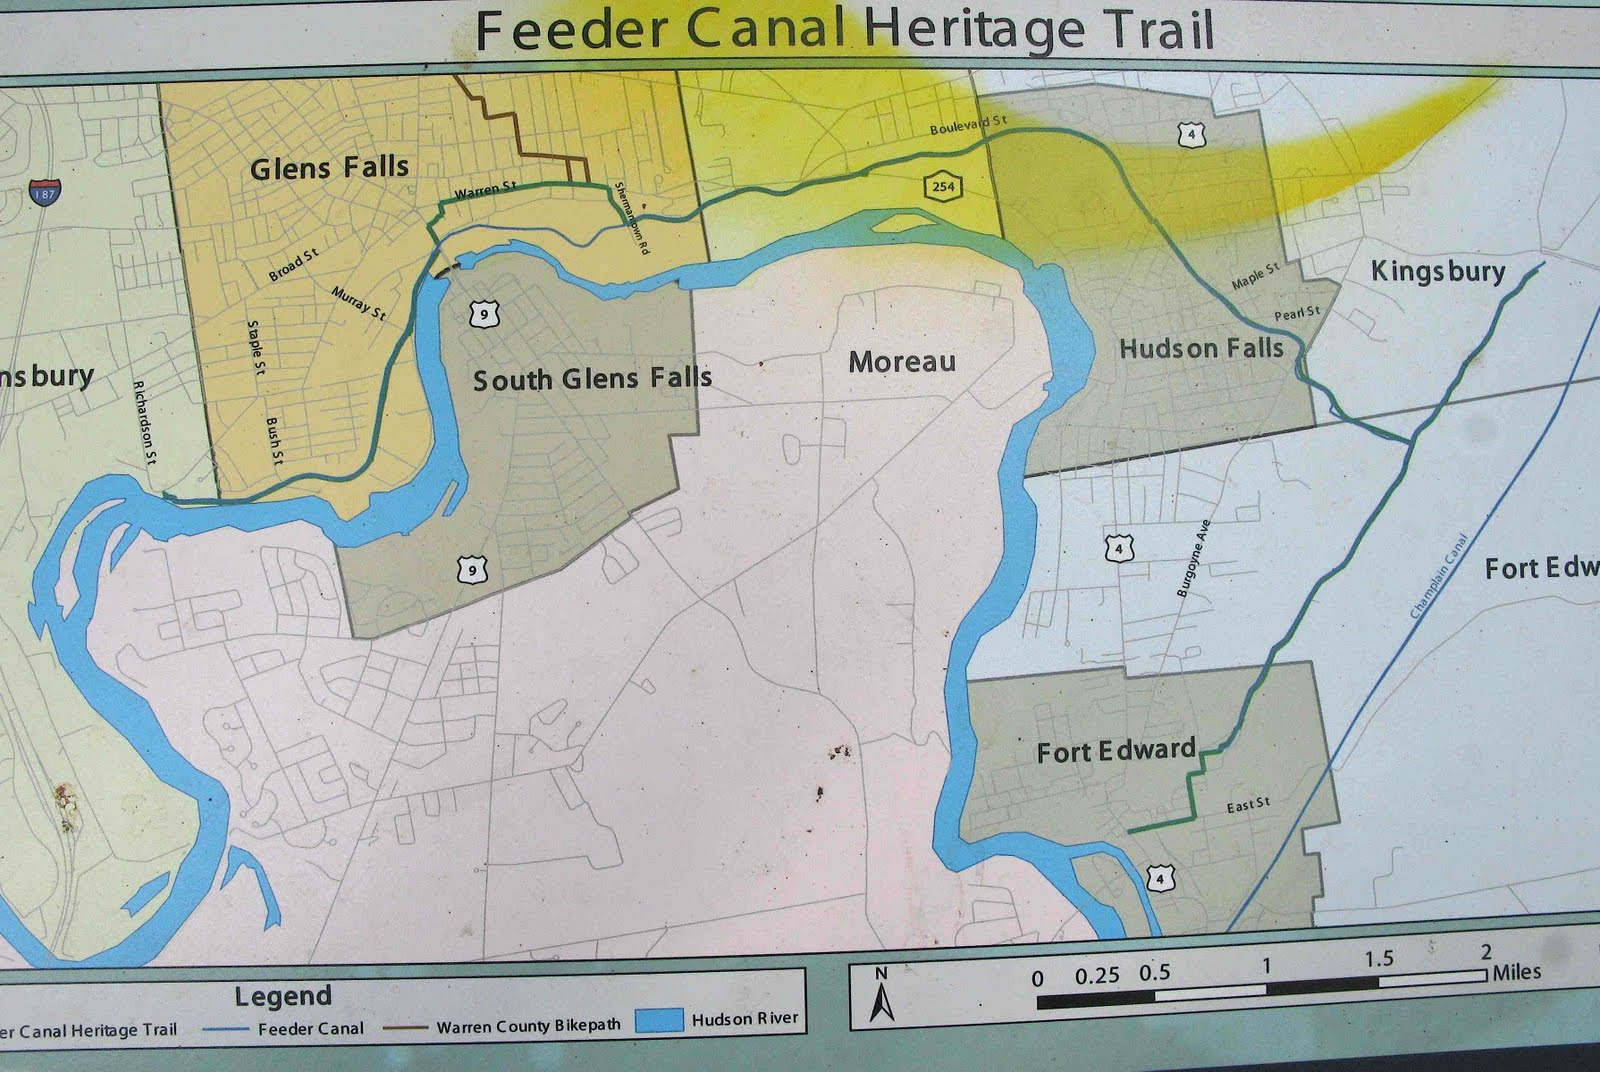 Saratoga woods and waterways: Paddling the Feeder Canalglens falls city